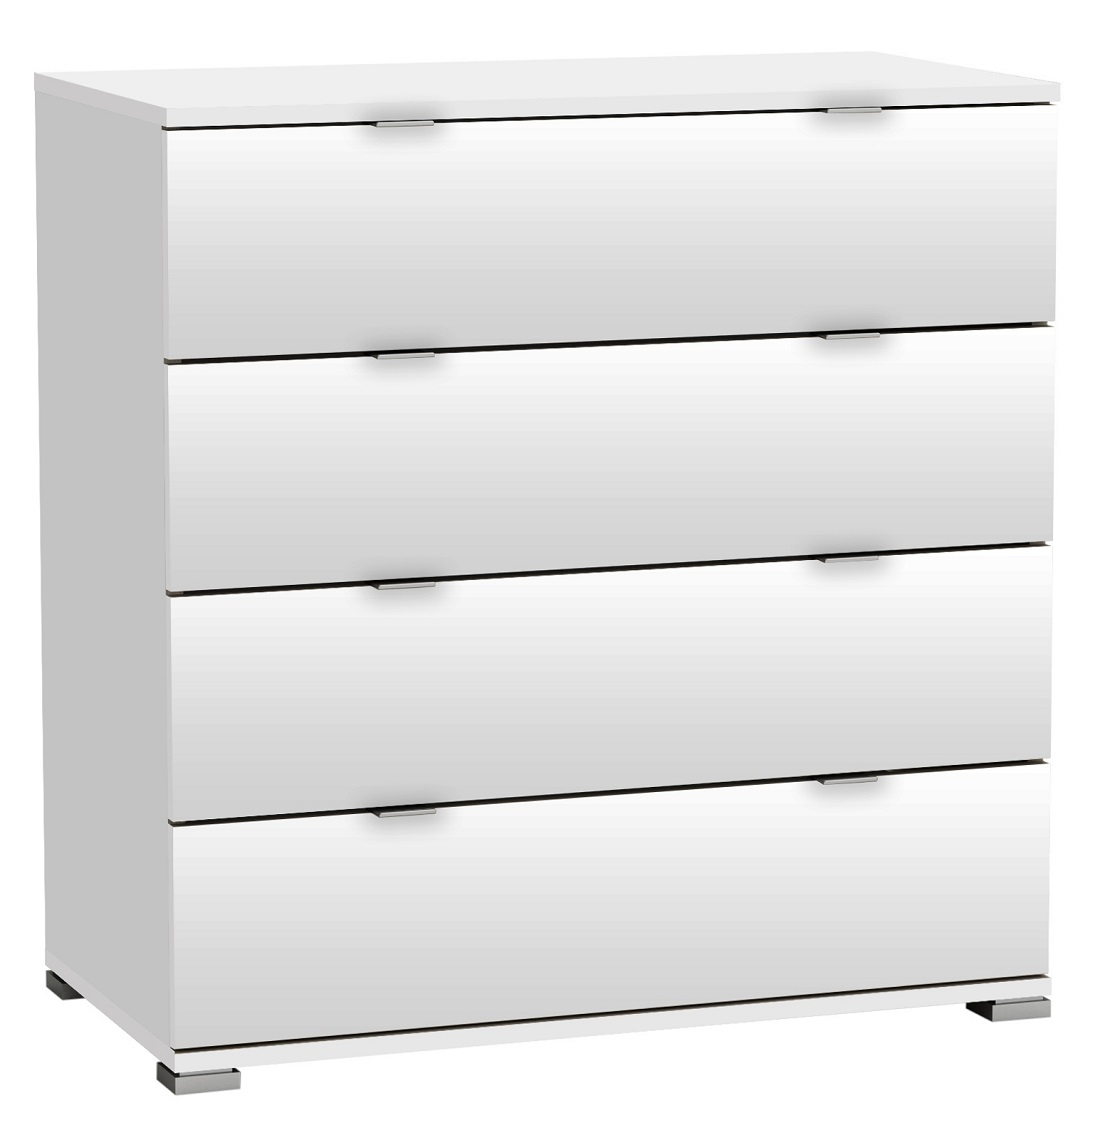 Commode Perfect 82 cm hoog – wit   Young Furniture